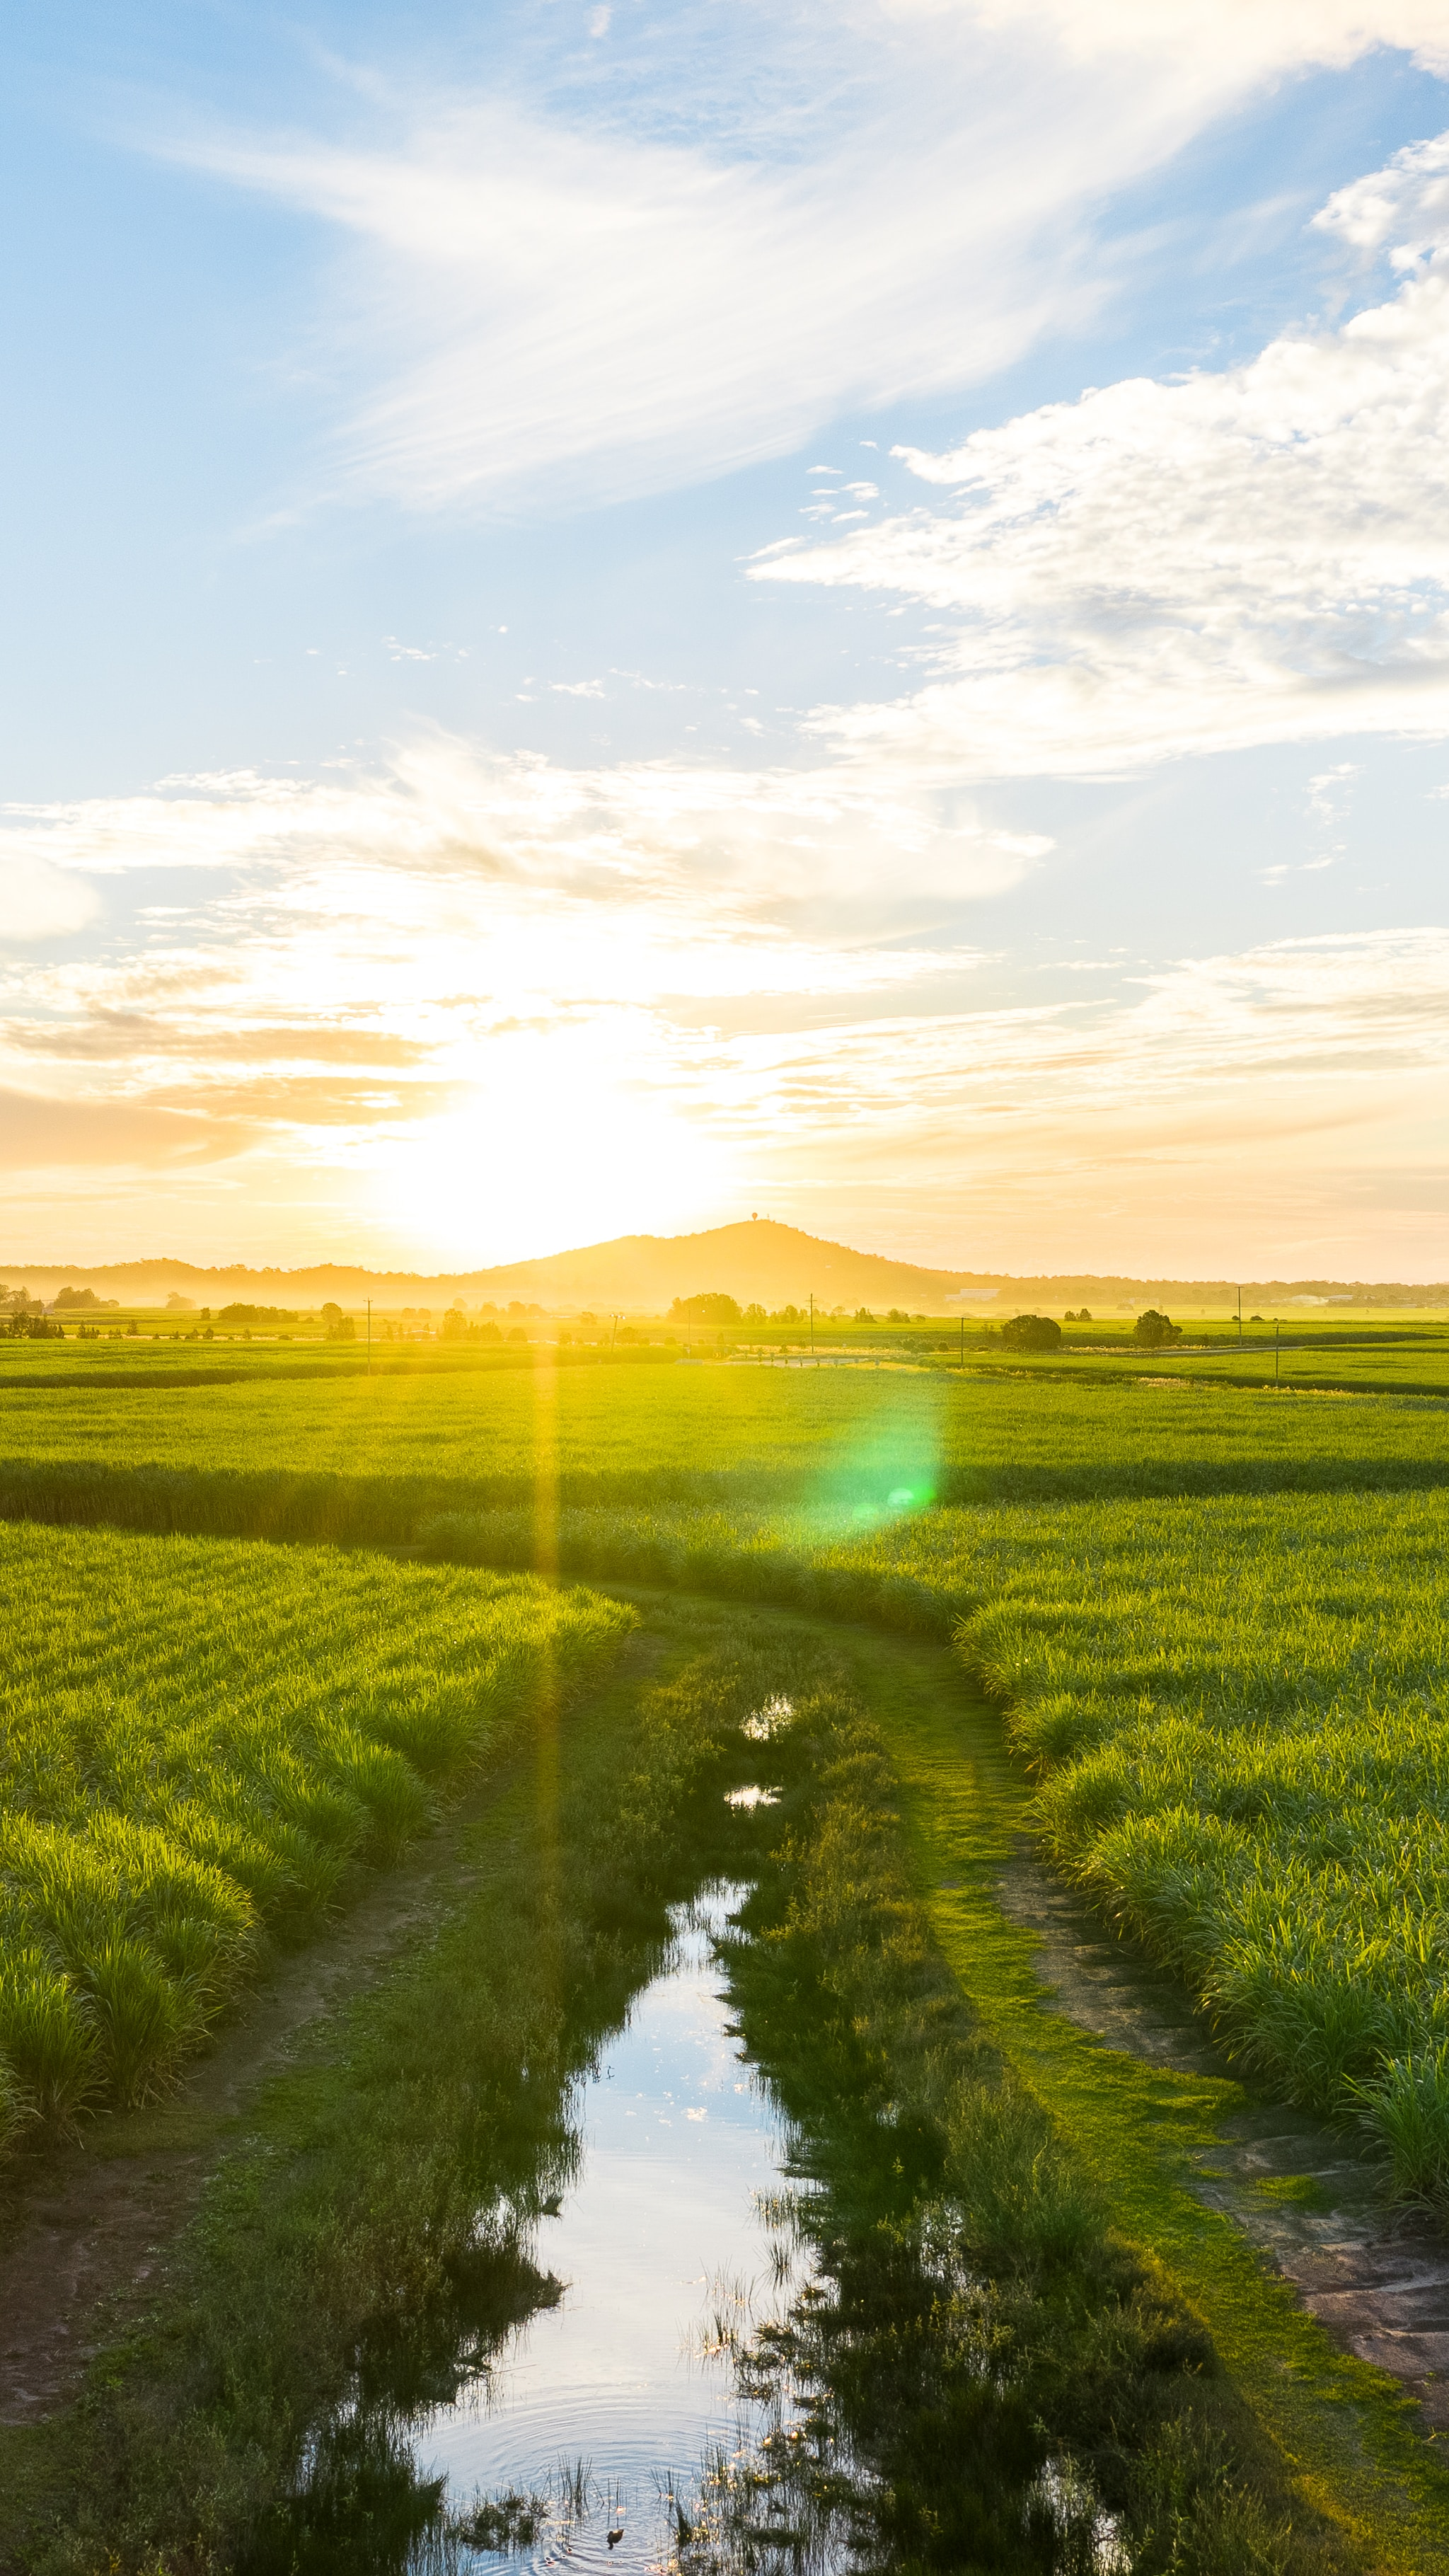 125077 download wallpaper Nature, Road, Field, Sunlight, Bright, Glare, Landscape screensavers and pictures for free